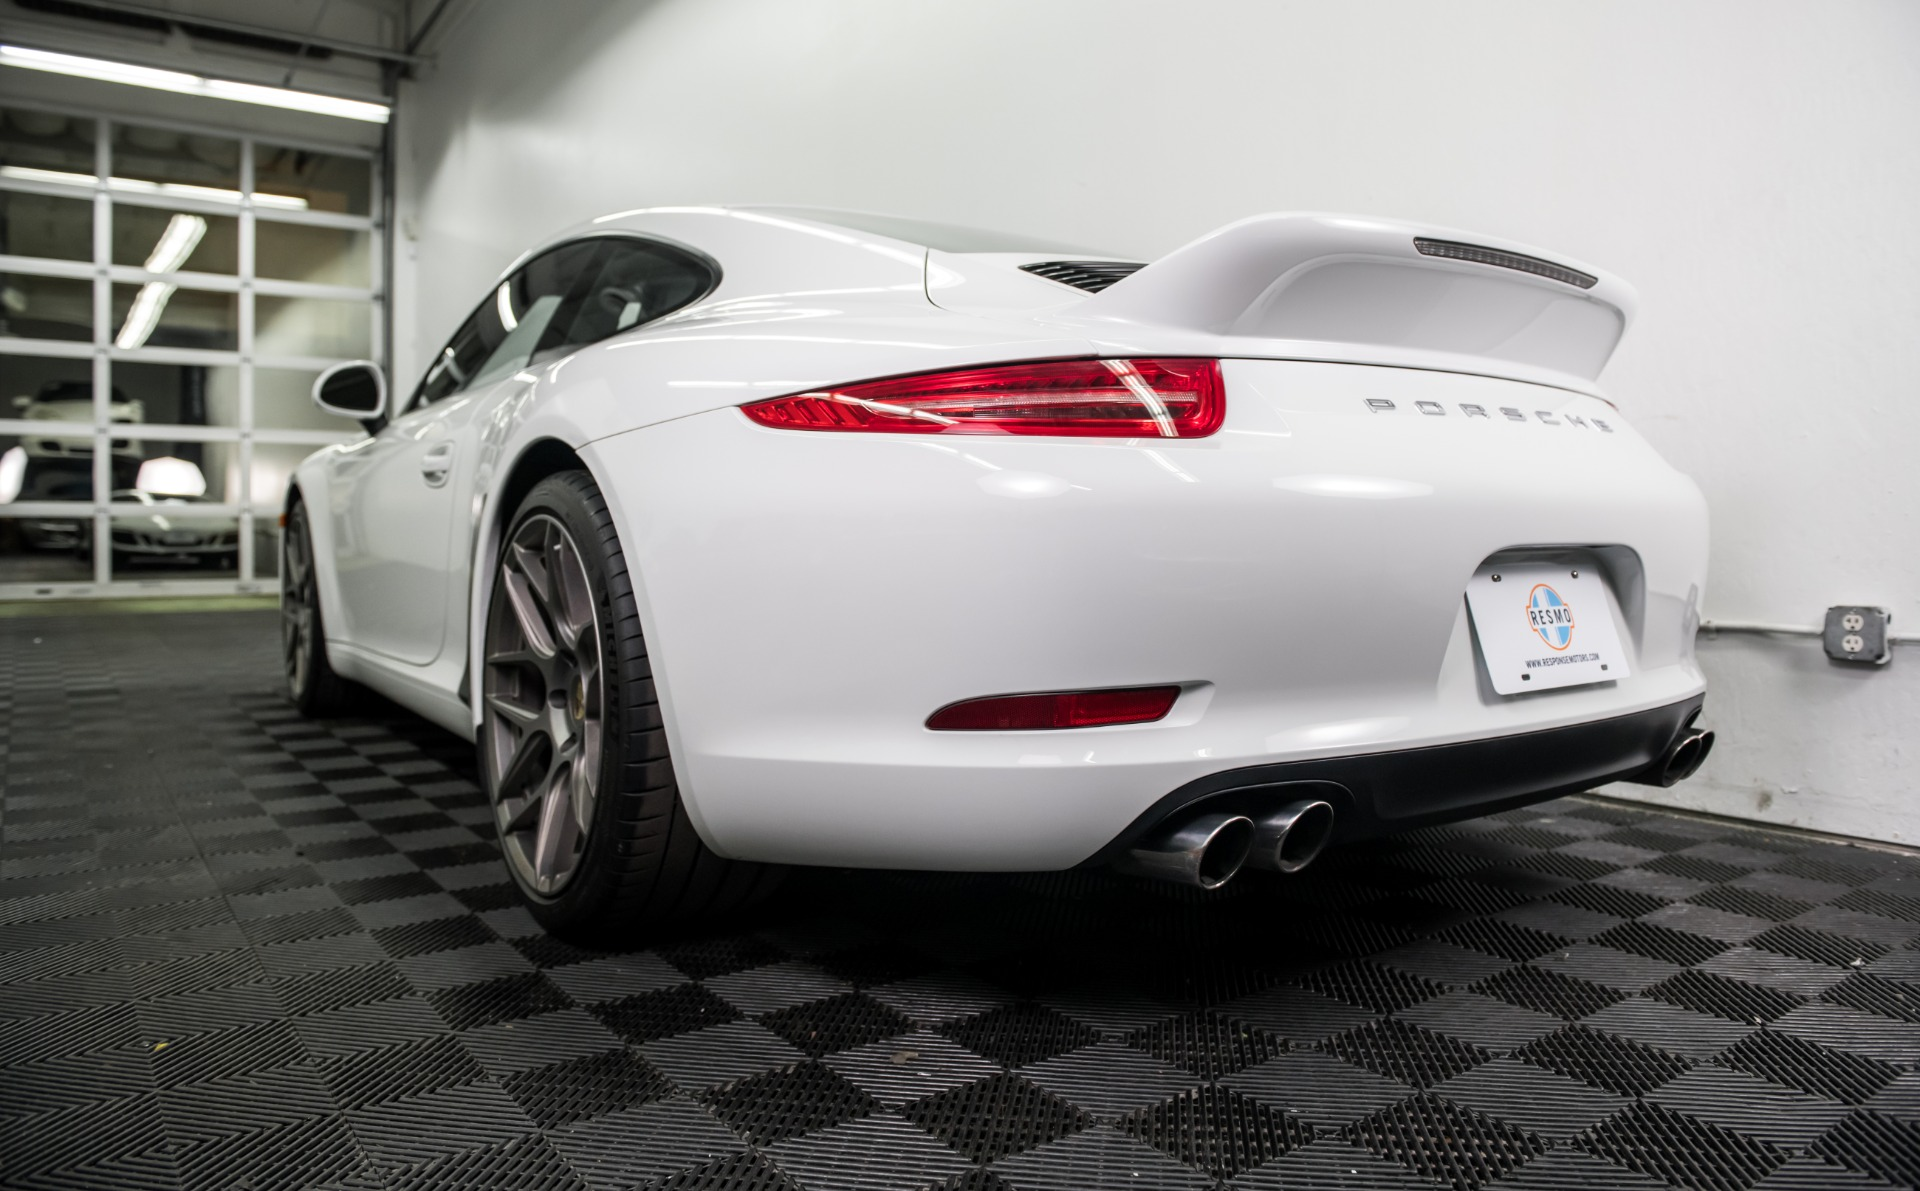 Used 2013 Porsche 911 Carrera S Used 2013 Porsche 911 Carrera S for sale Sold at Response Motors in Mountain View CA 7